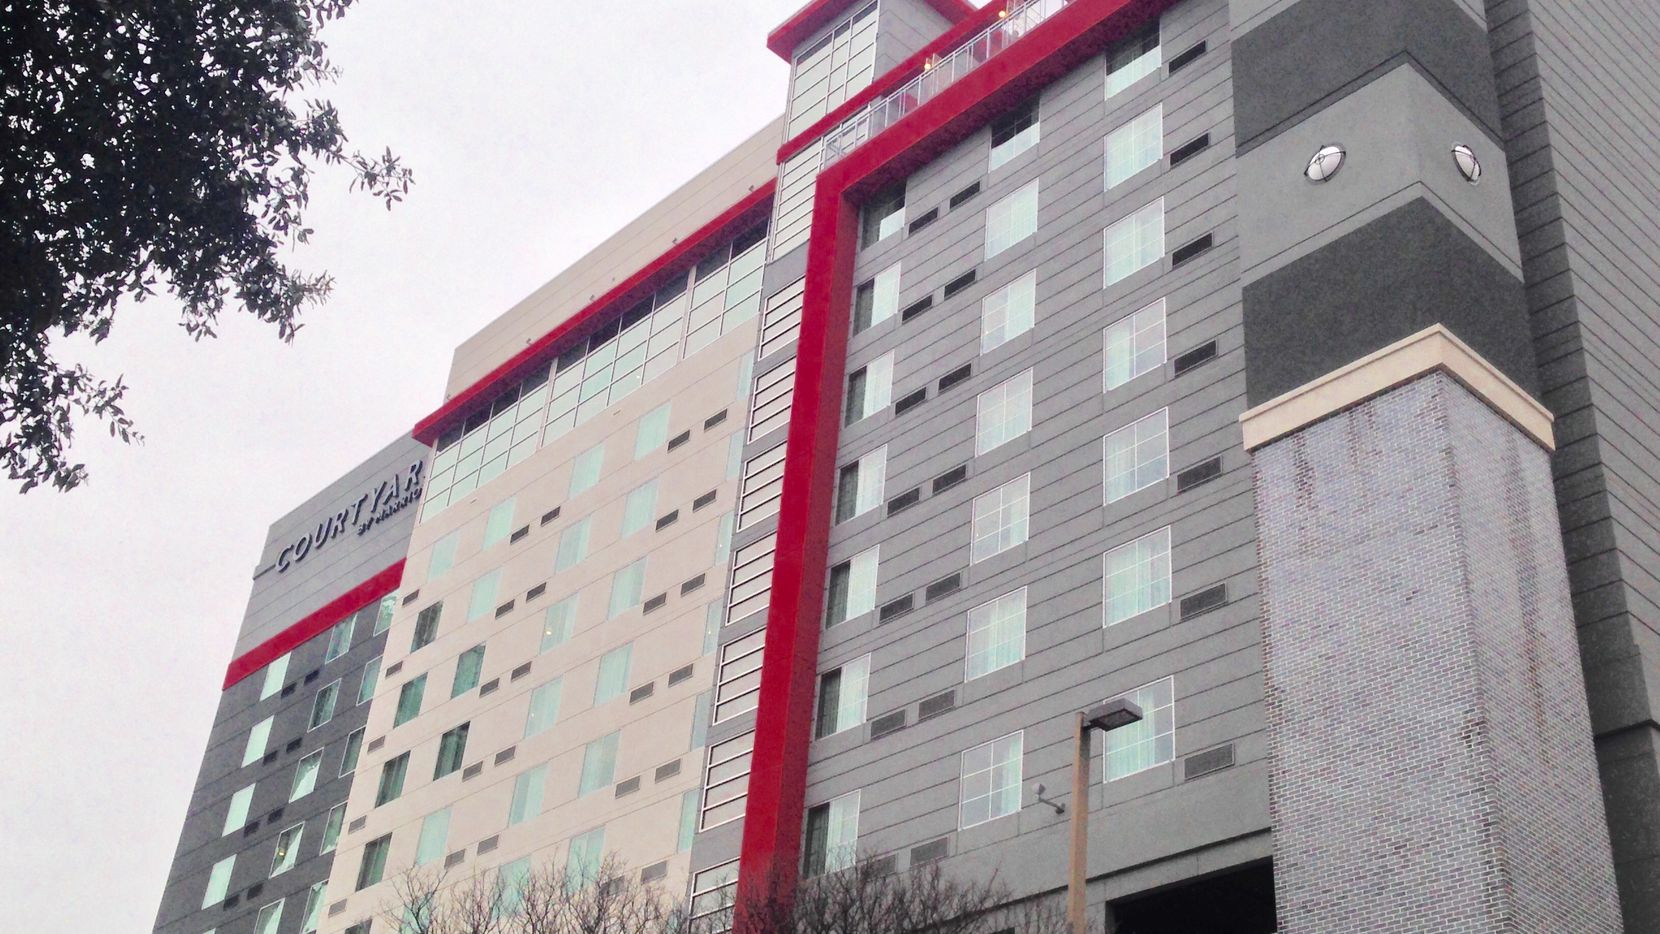 Chatham Lodging Trust bought the new Courtyard by Marriott Downtown Dallas Hotel.